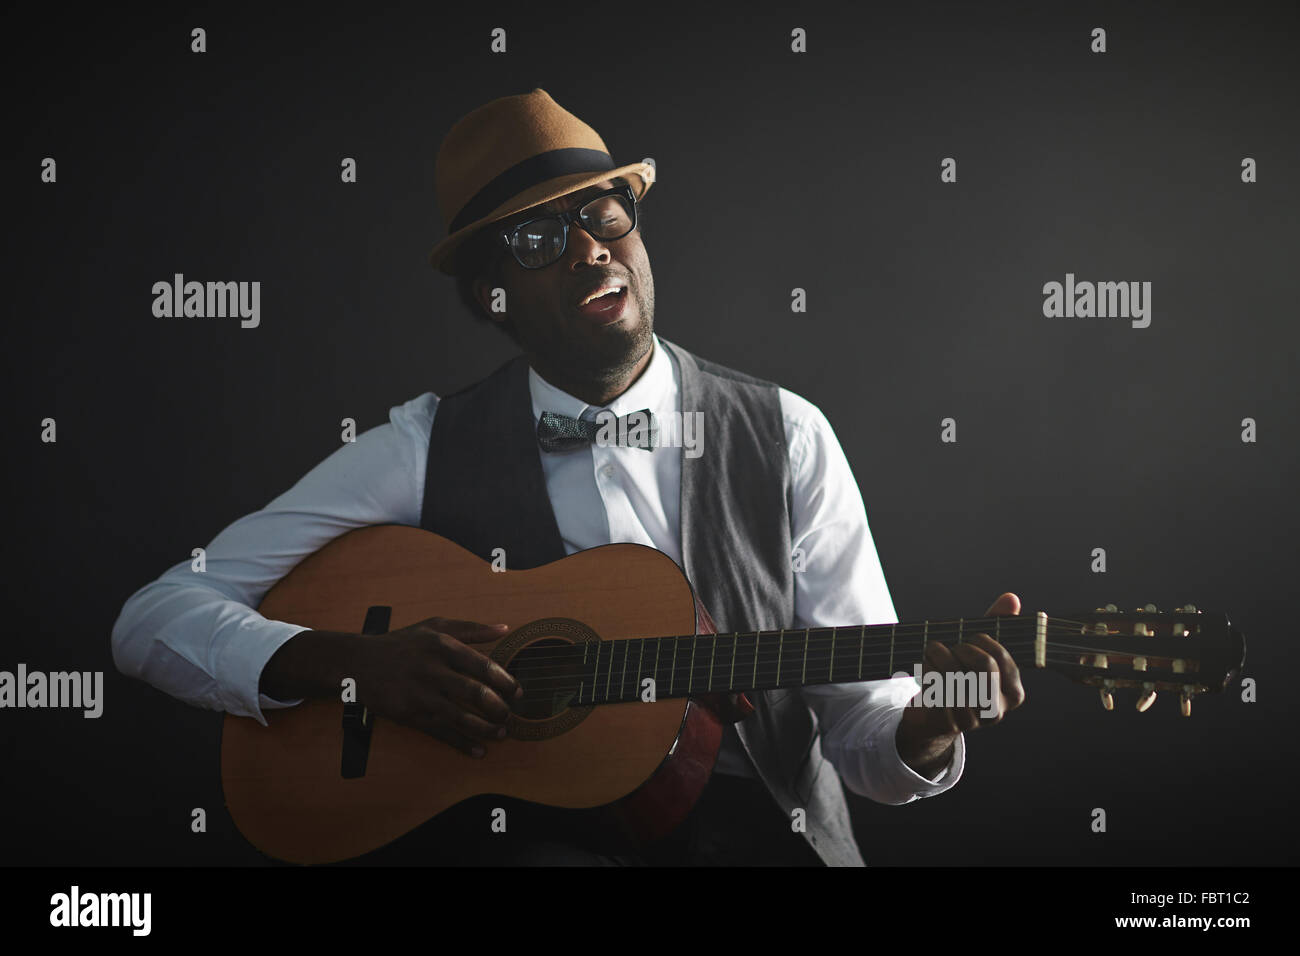 African young man playing guitar and singing - Stock Image